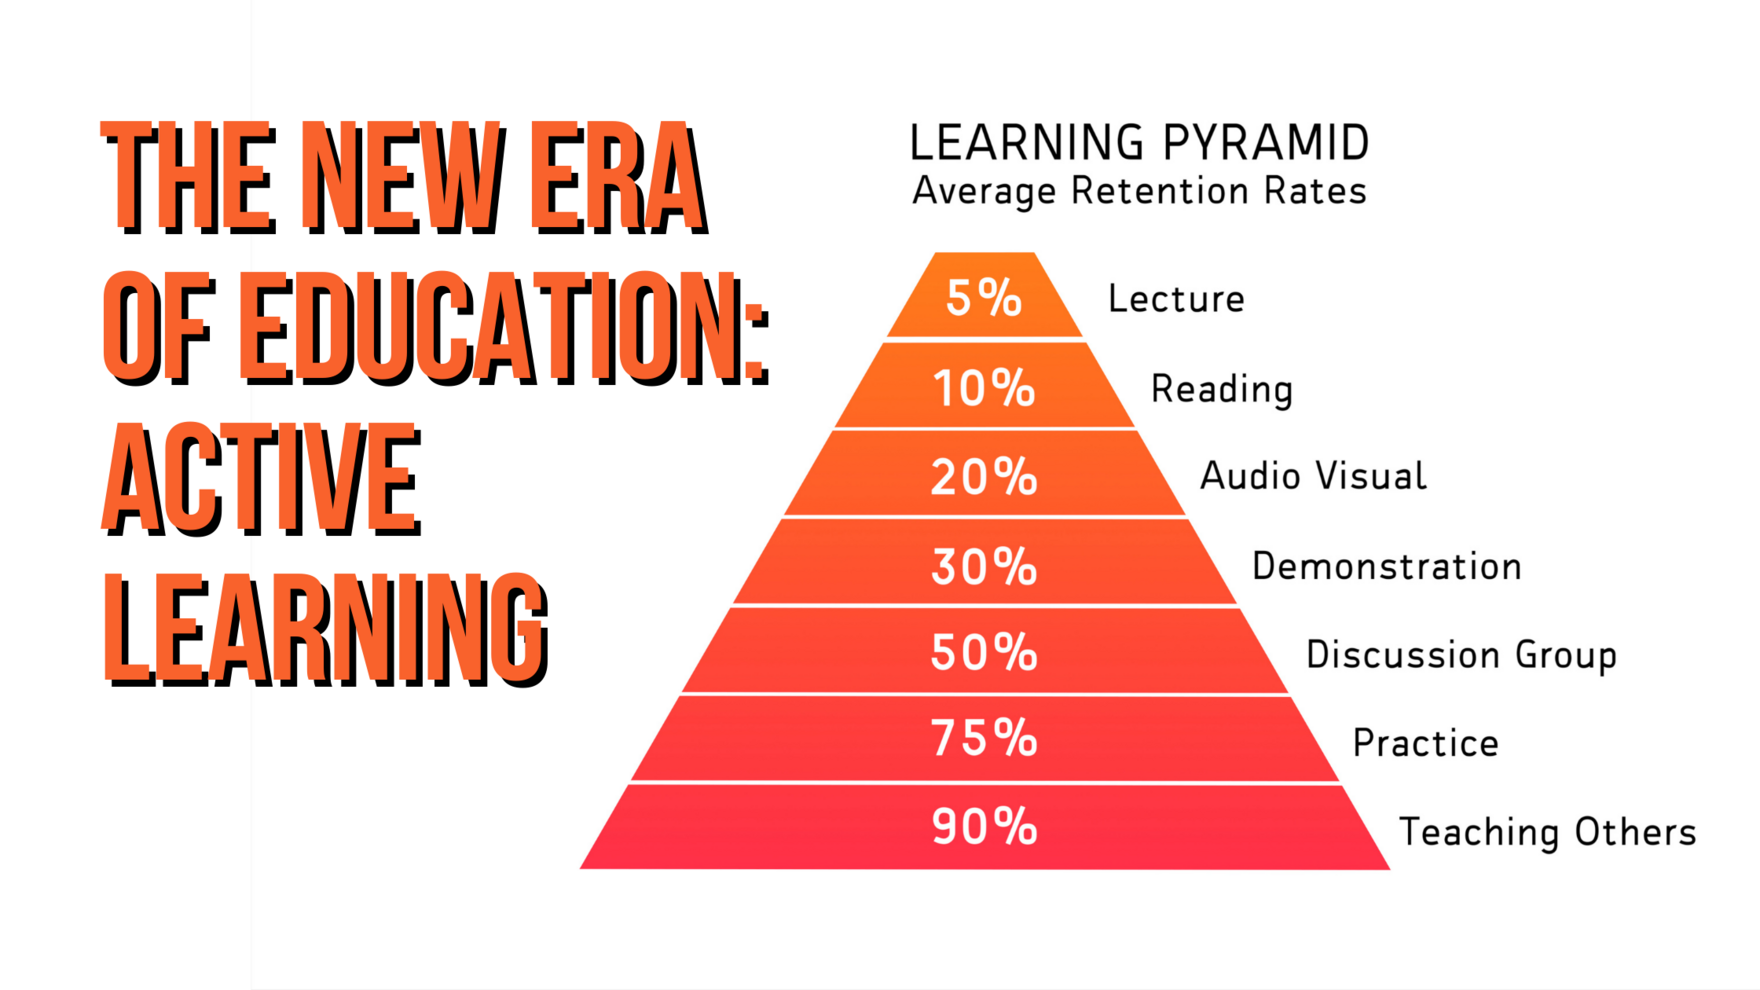 The New Era of Education Active Learning